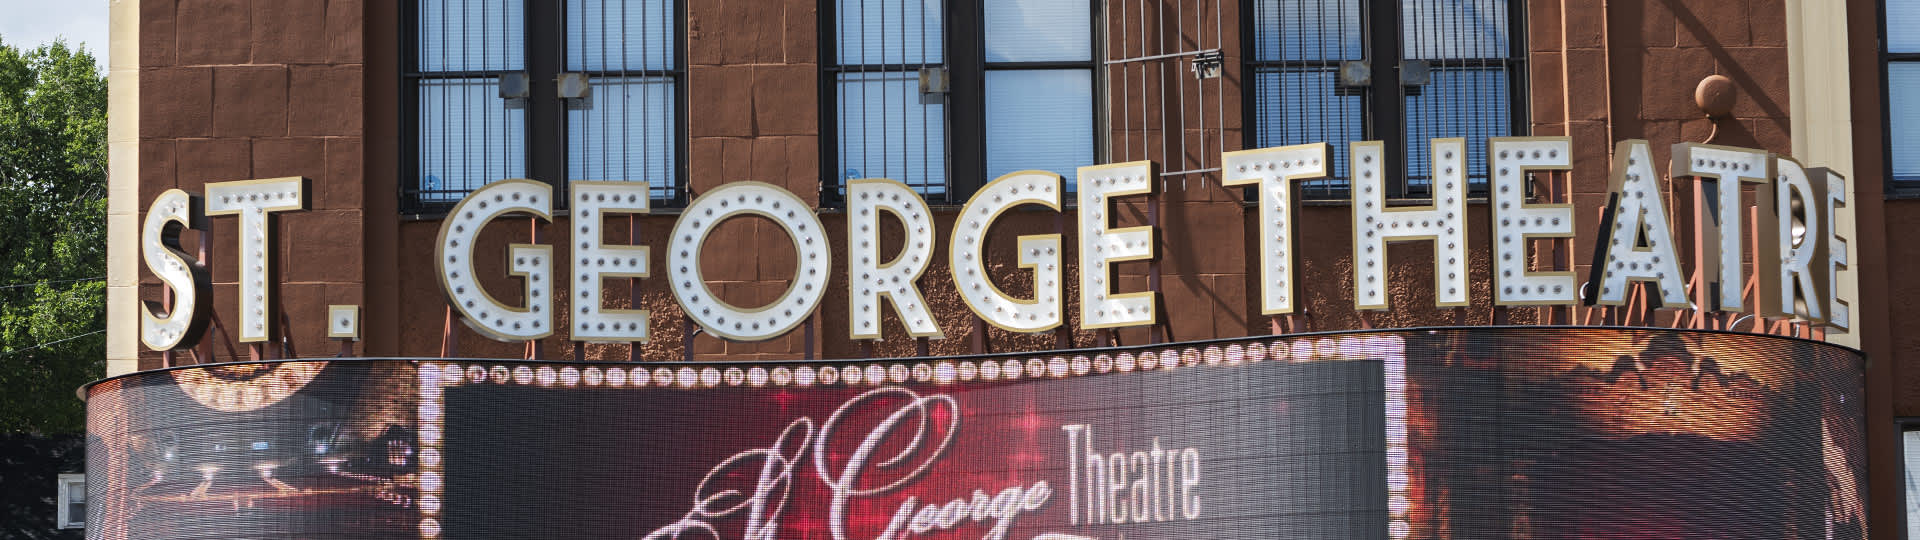 St George Theater